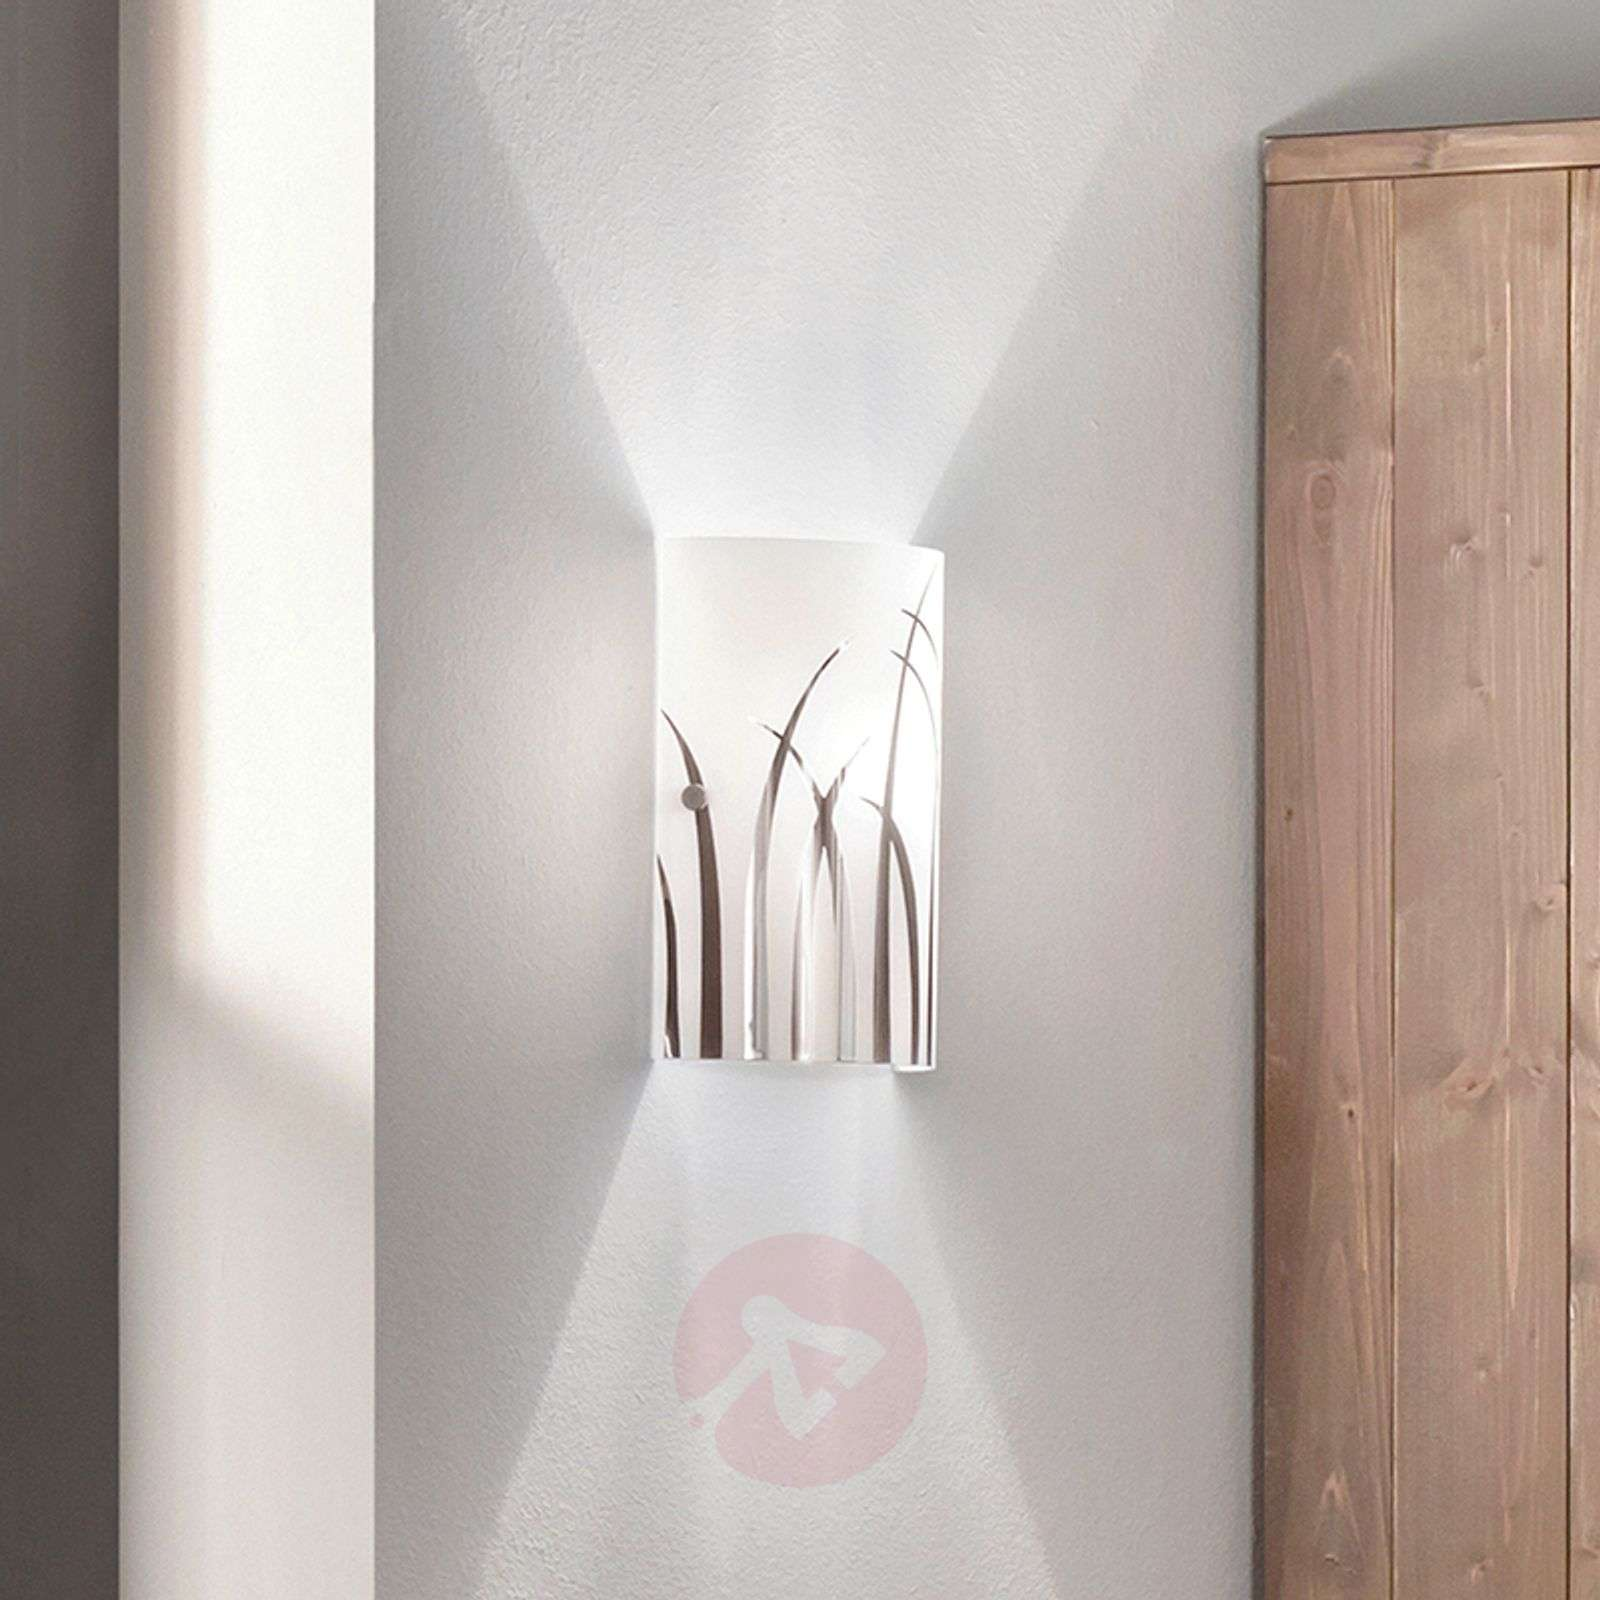 Wall light Rivato w. chrome-coloured grass pattern-3031926-01